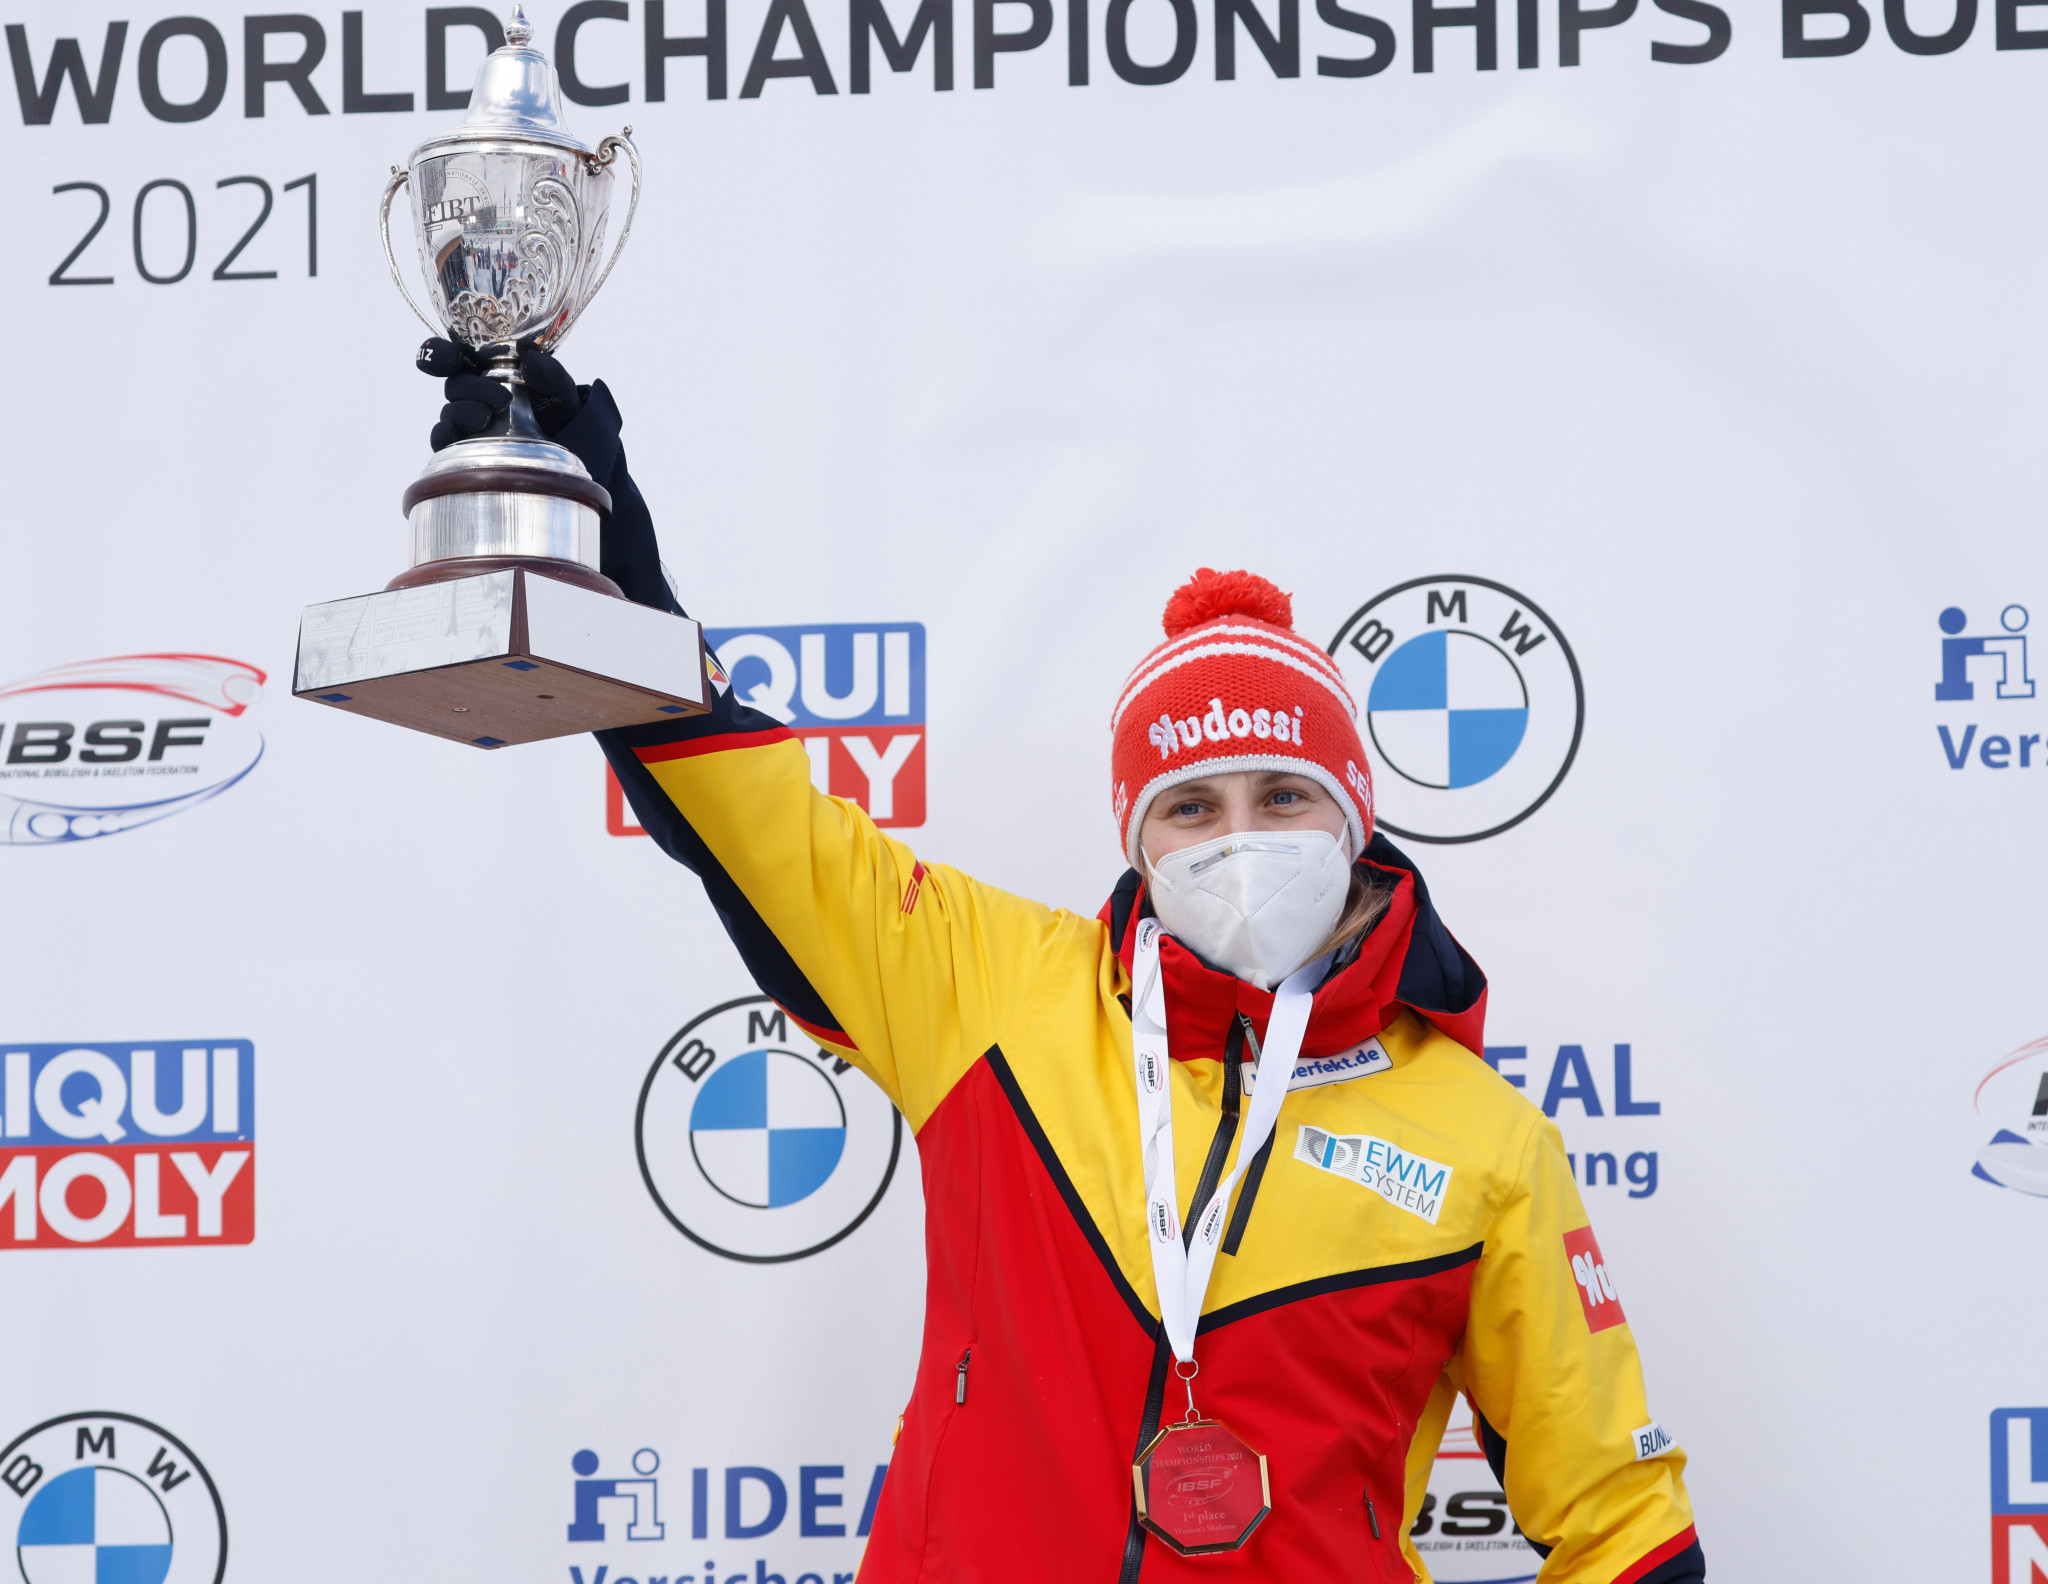 Hermann completes turnaround to win women's skeleton title at IBSF World Championships